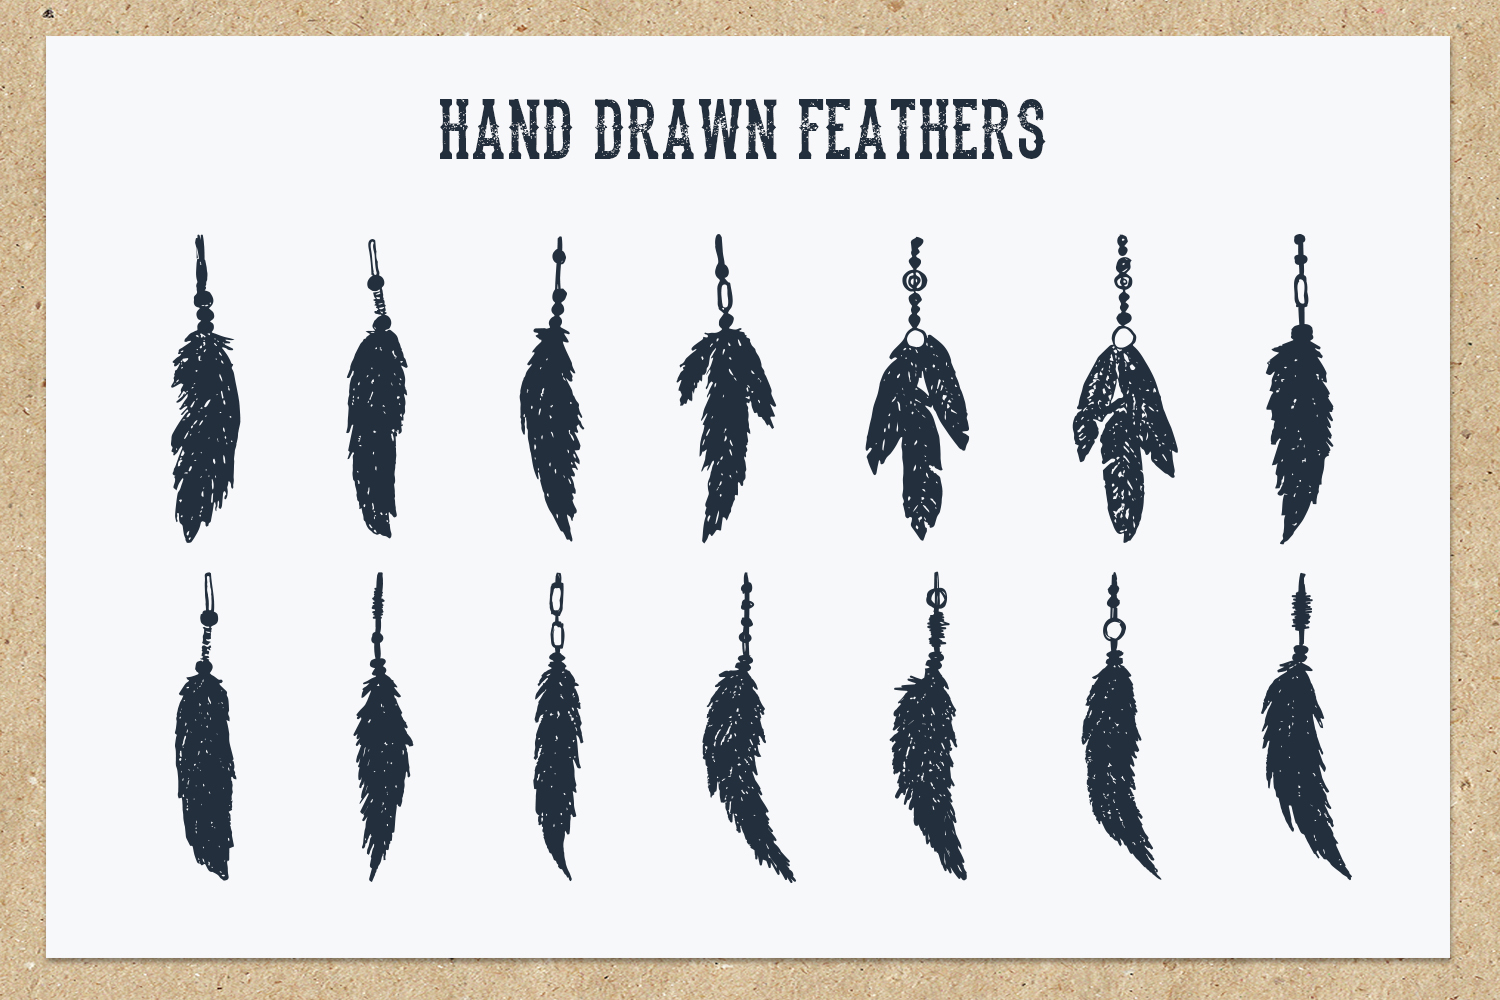 Native Spirit - 55 Hand Drawn Objects Graphic By Cosmic Store Image 6